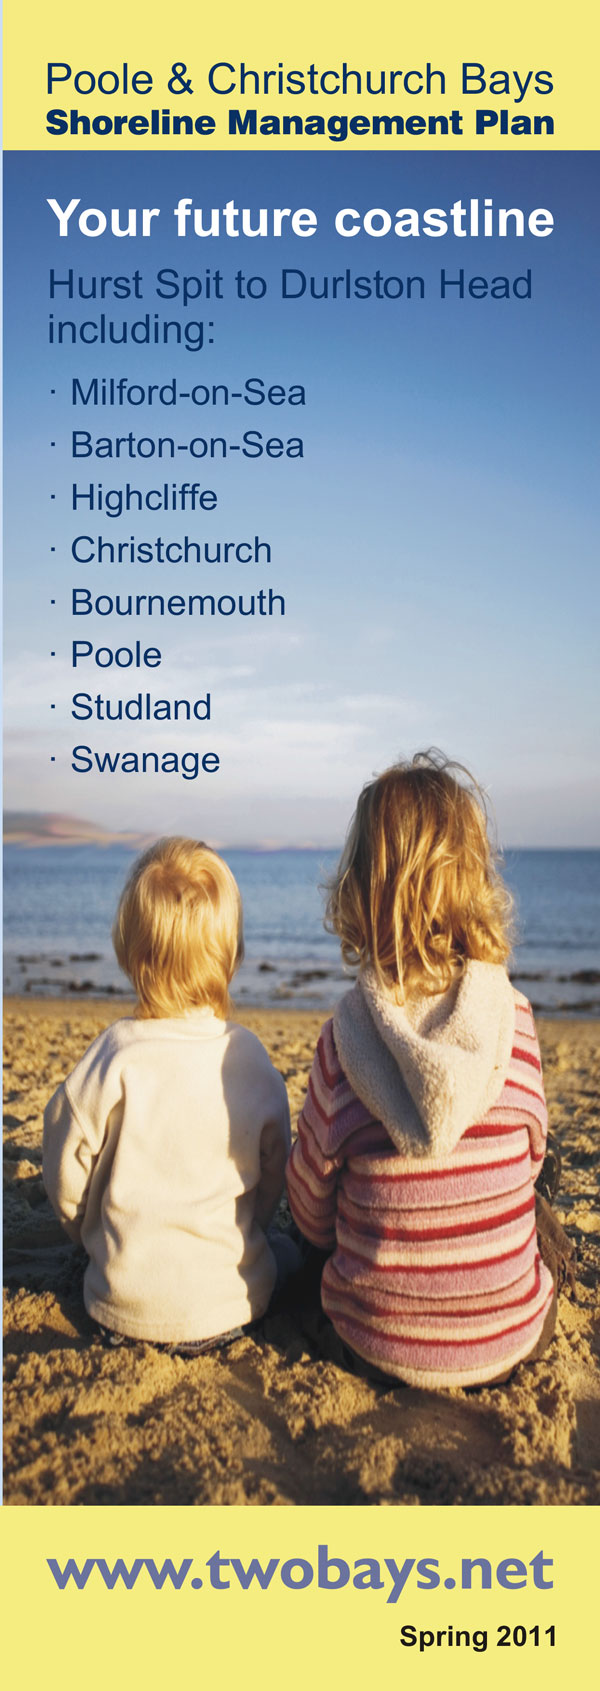 Poole and Christchurch Bays SMP leaflet, Spring 2011